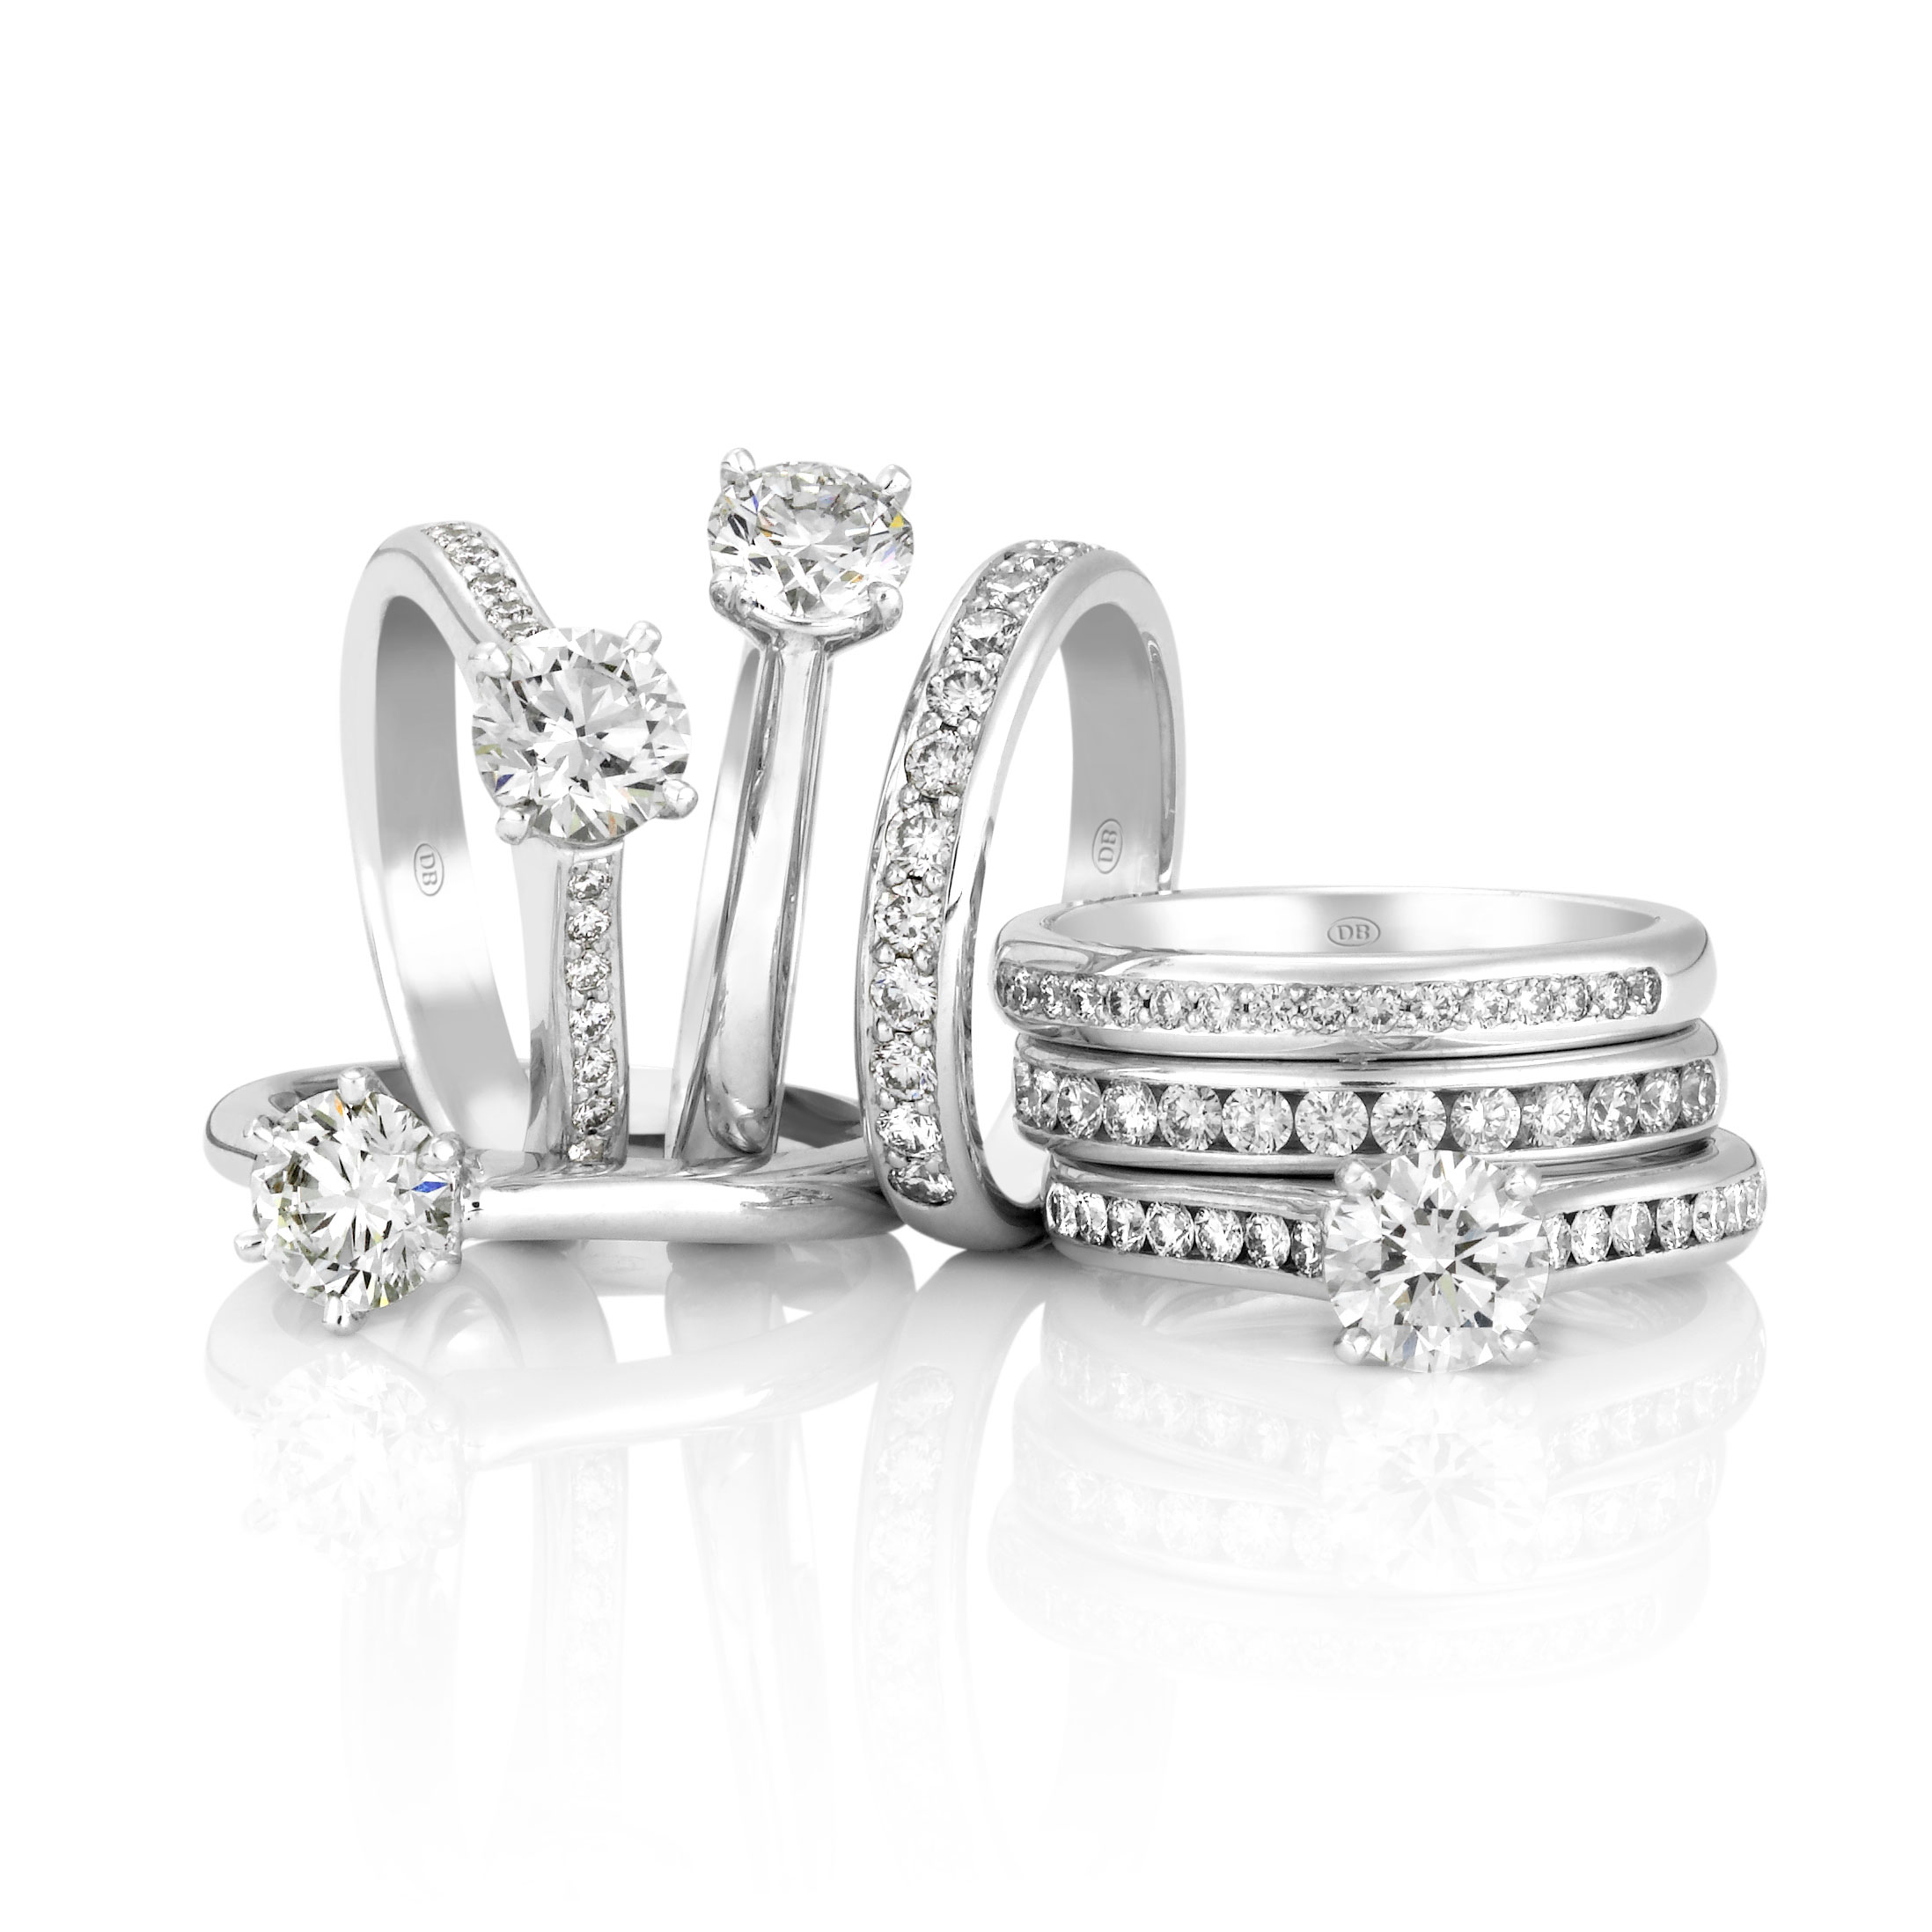 Engagement rings. Diamond rings. Wedding bands. Eternity rings. David Benn Fine Jewellery, Sydney, Australia.